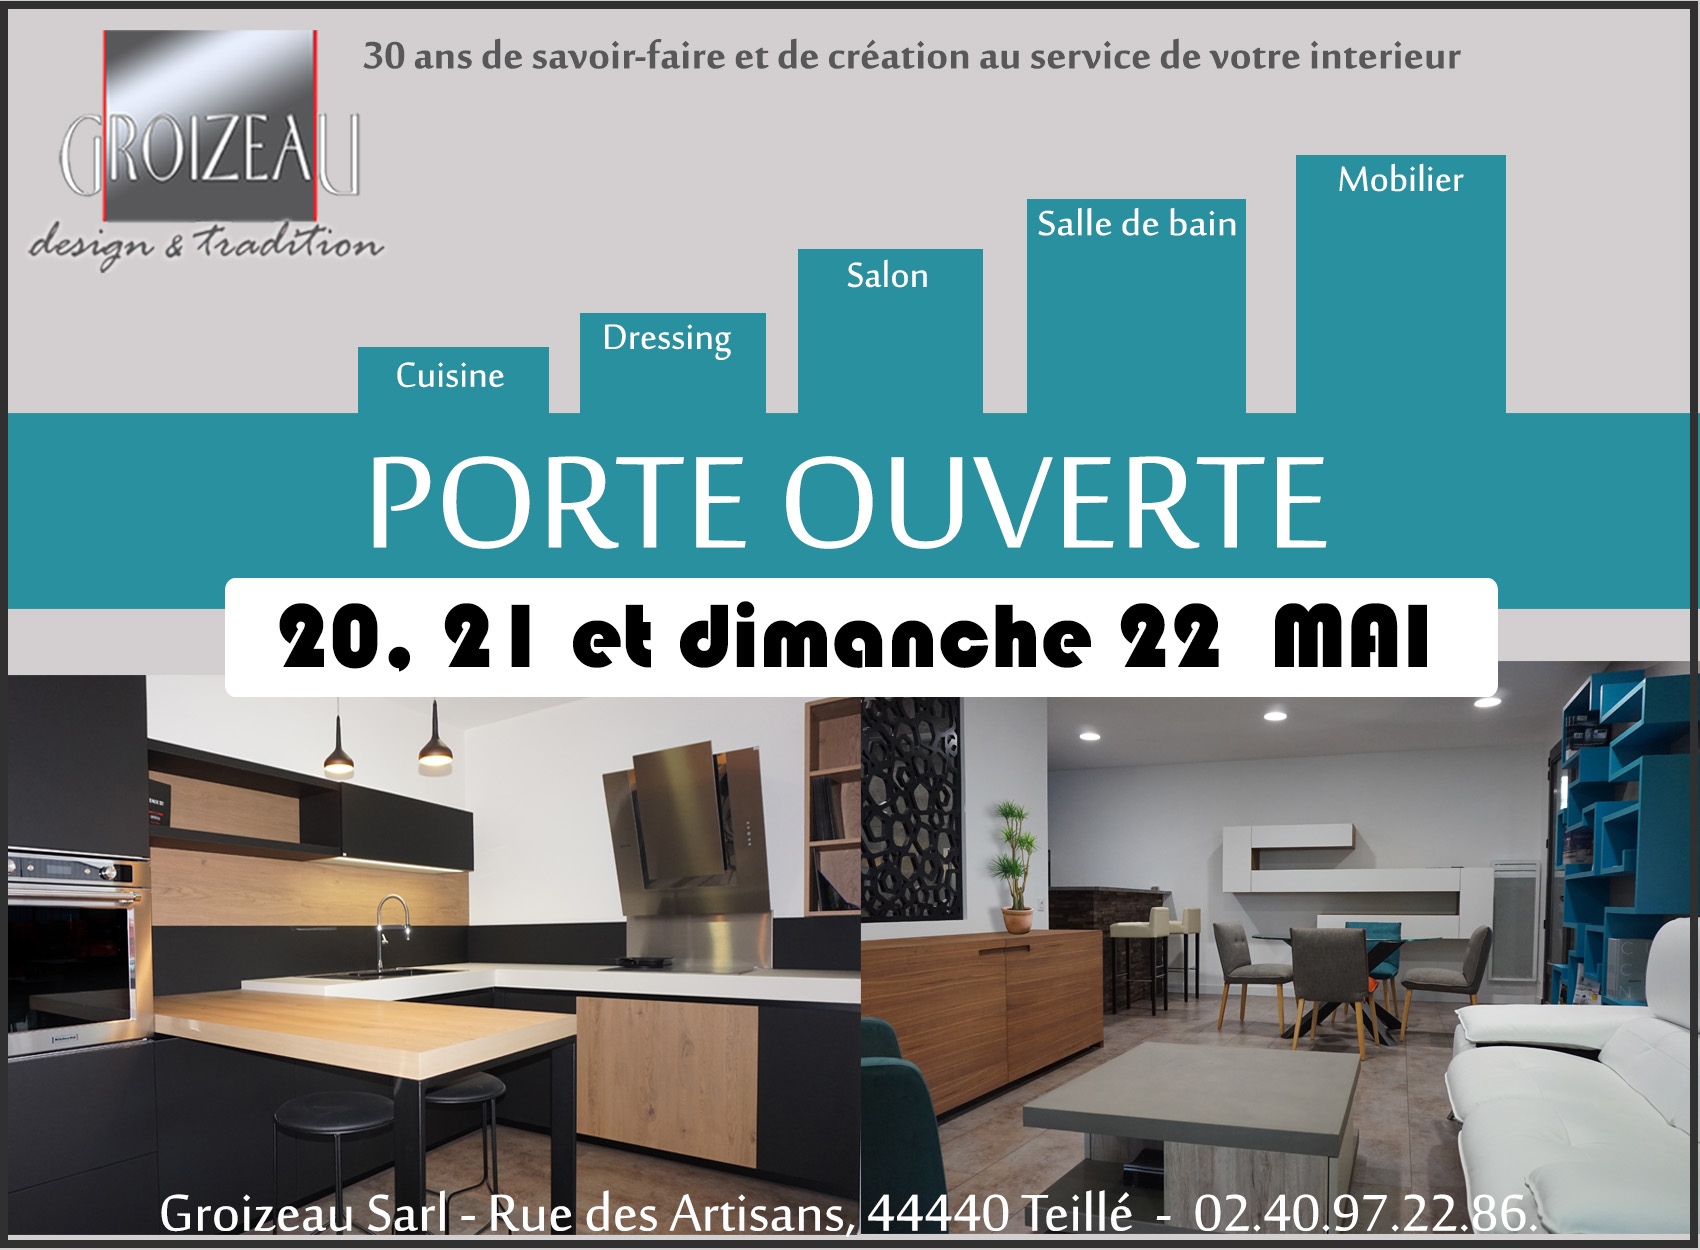 Showroom cuisine Teillé - atelier Groizeau invitation